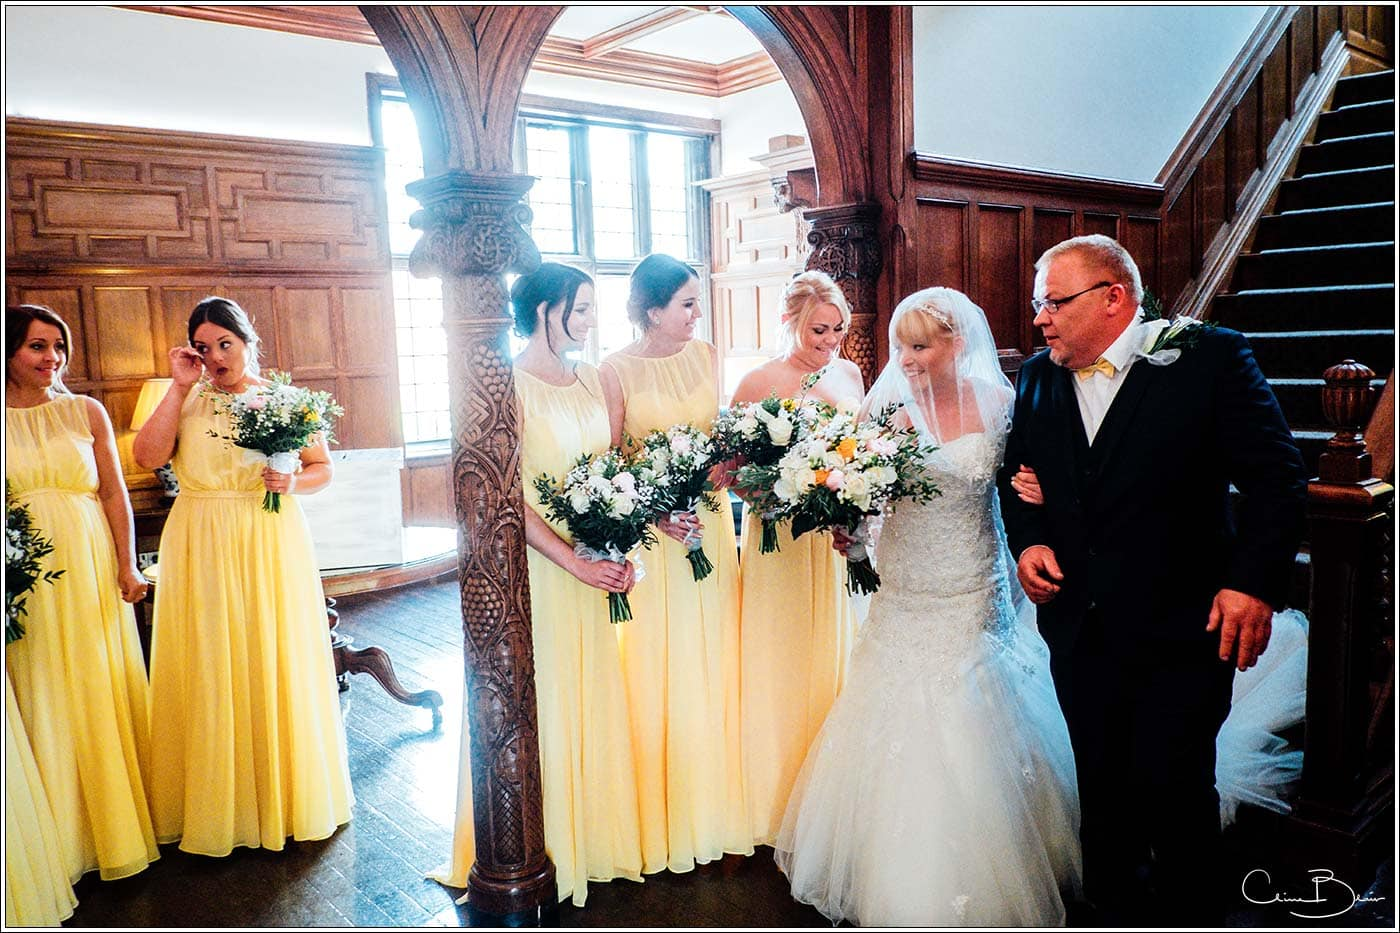 Pendrell Hall photographer captured Bride and father before entering the wedding ceremony